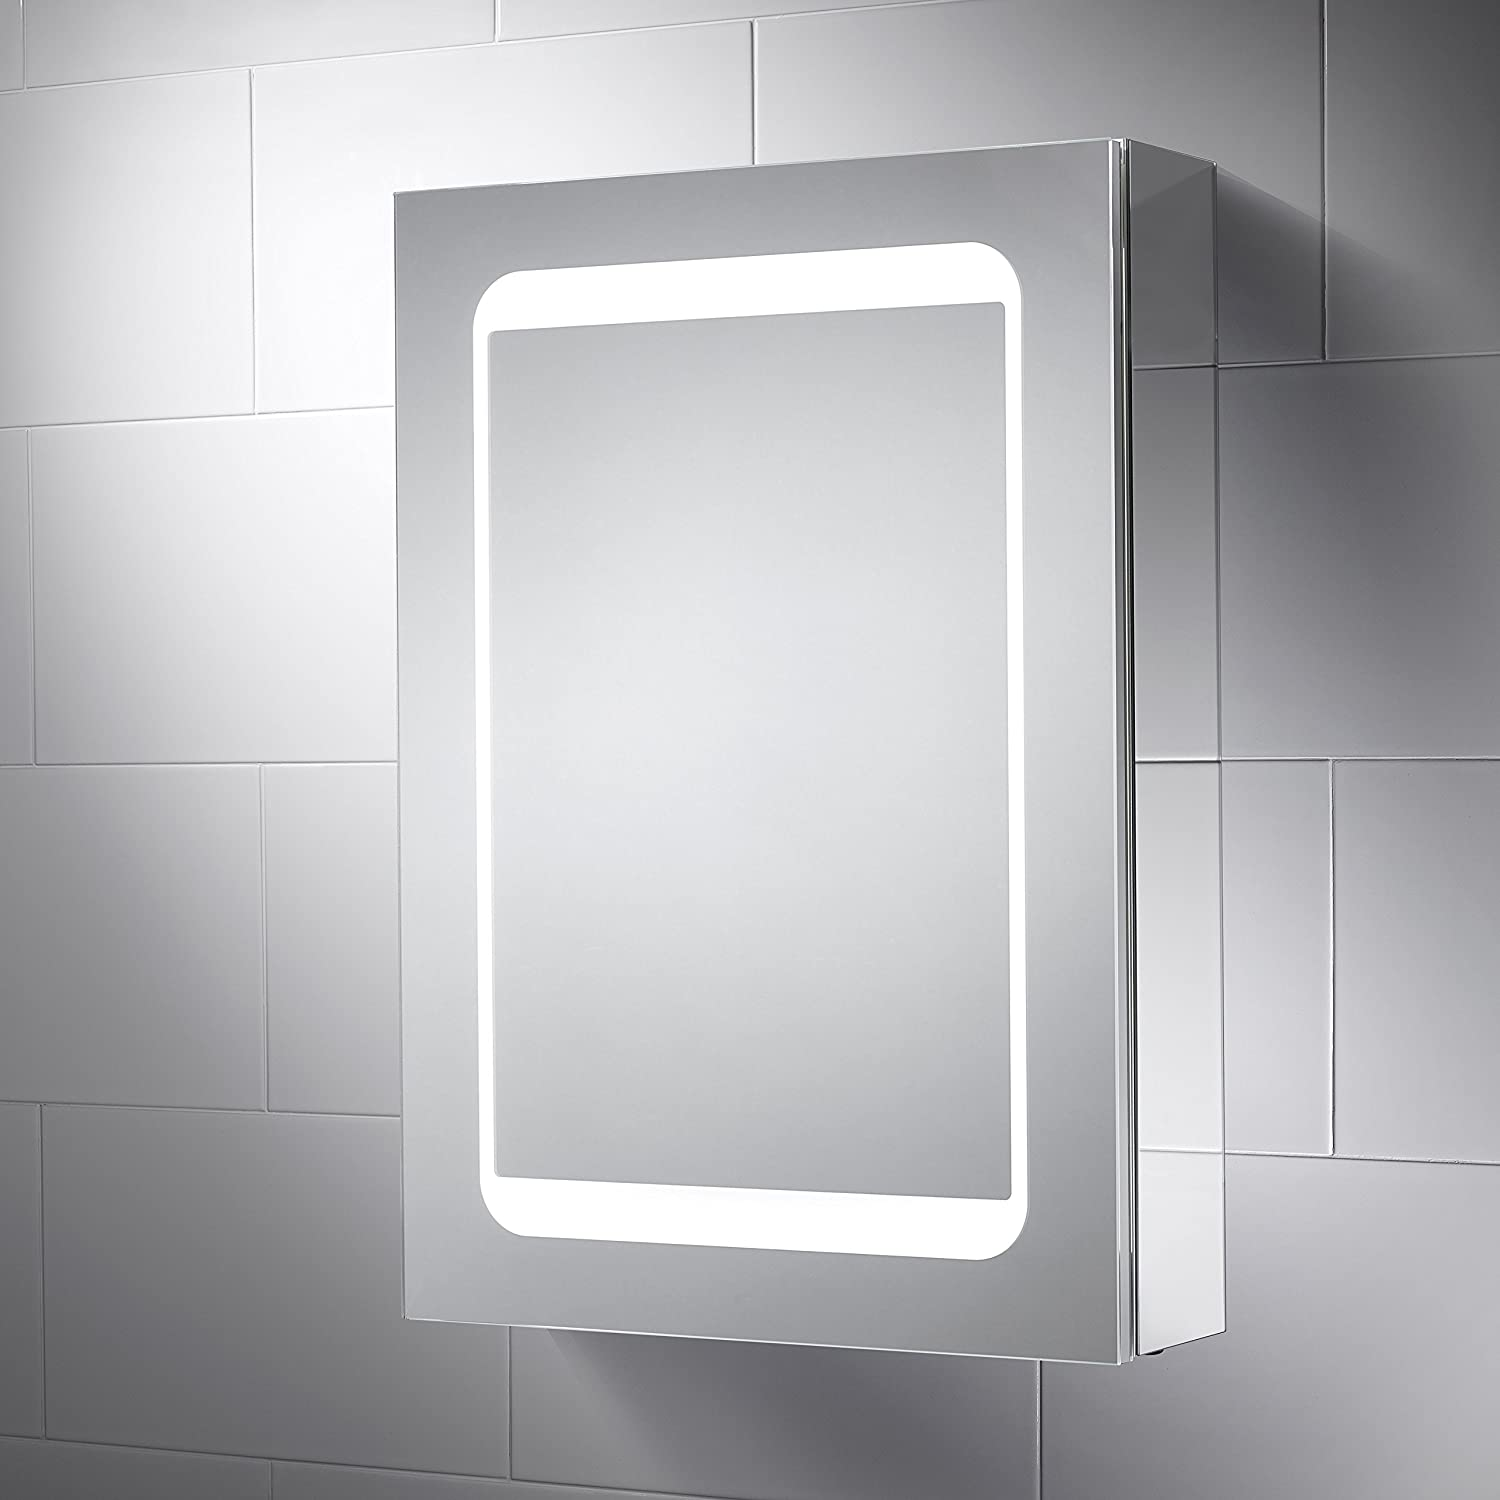 Pebble Grey 500 x 700 mm Bathroom Cabinet Atlanta LED Illuminated ...